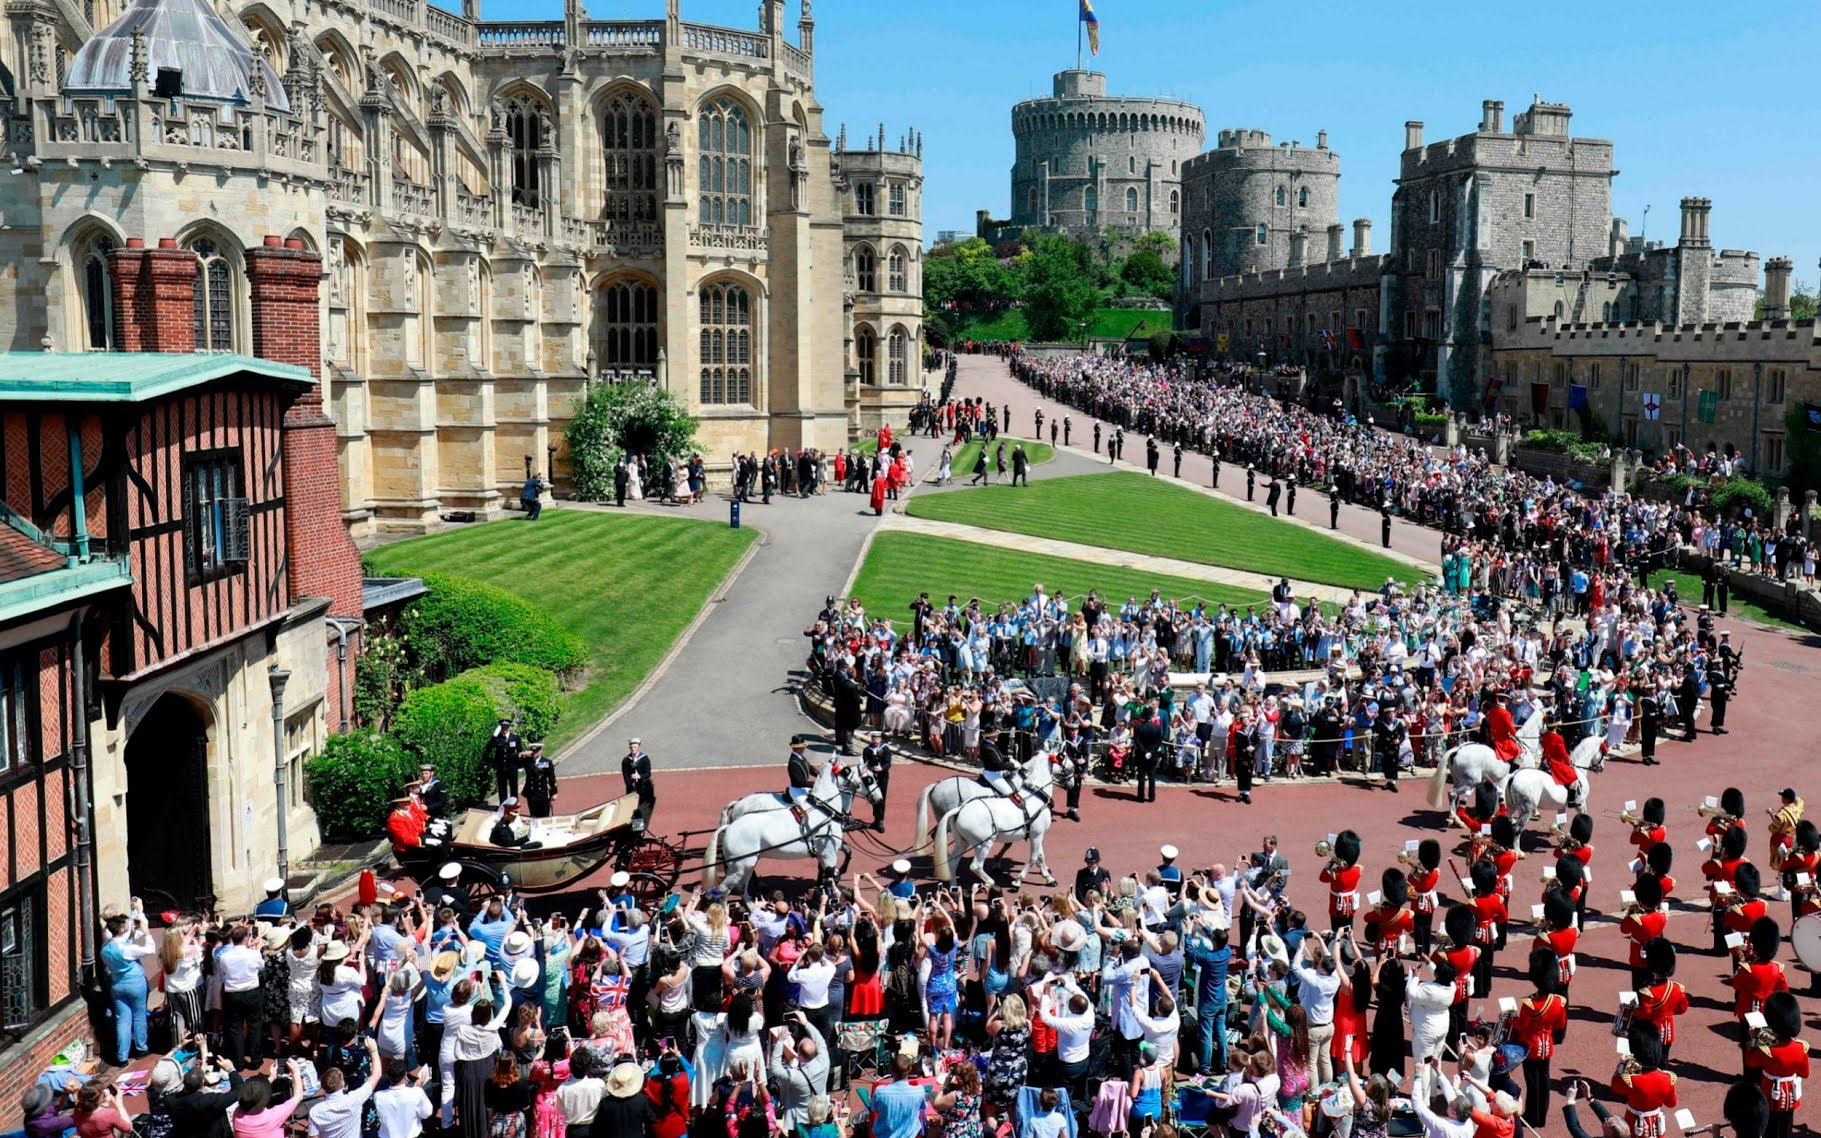 Crowds gather outside Windsor Castle